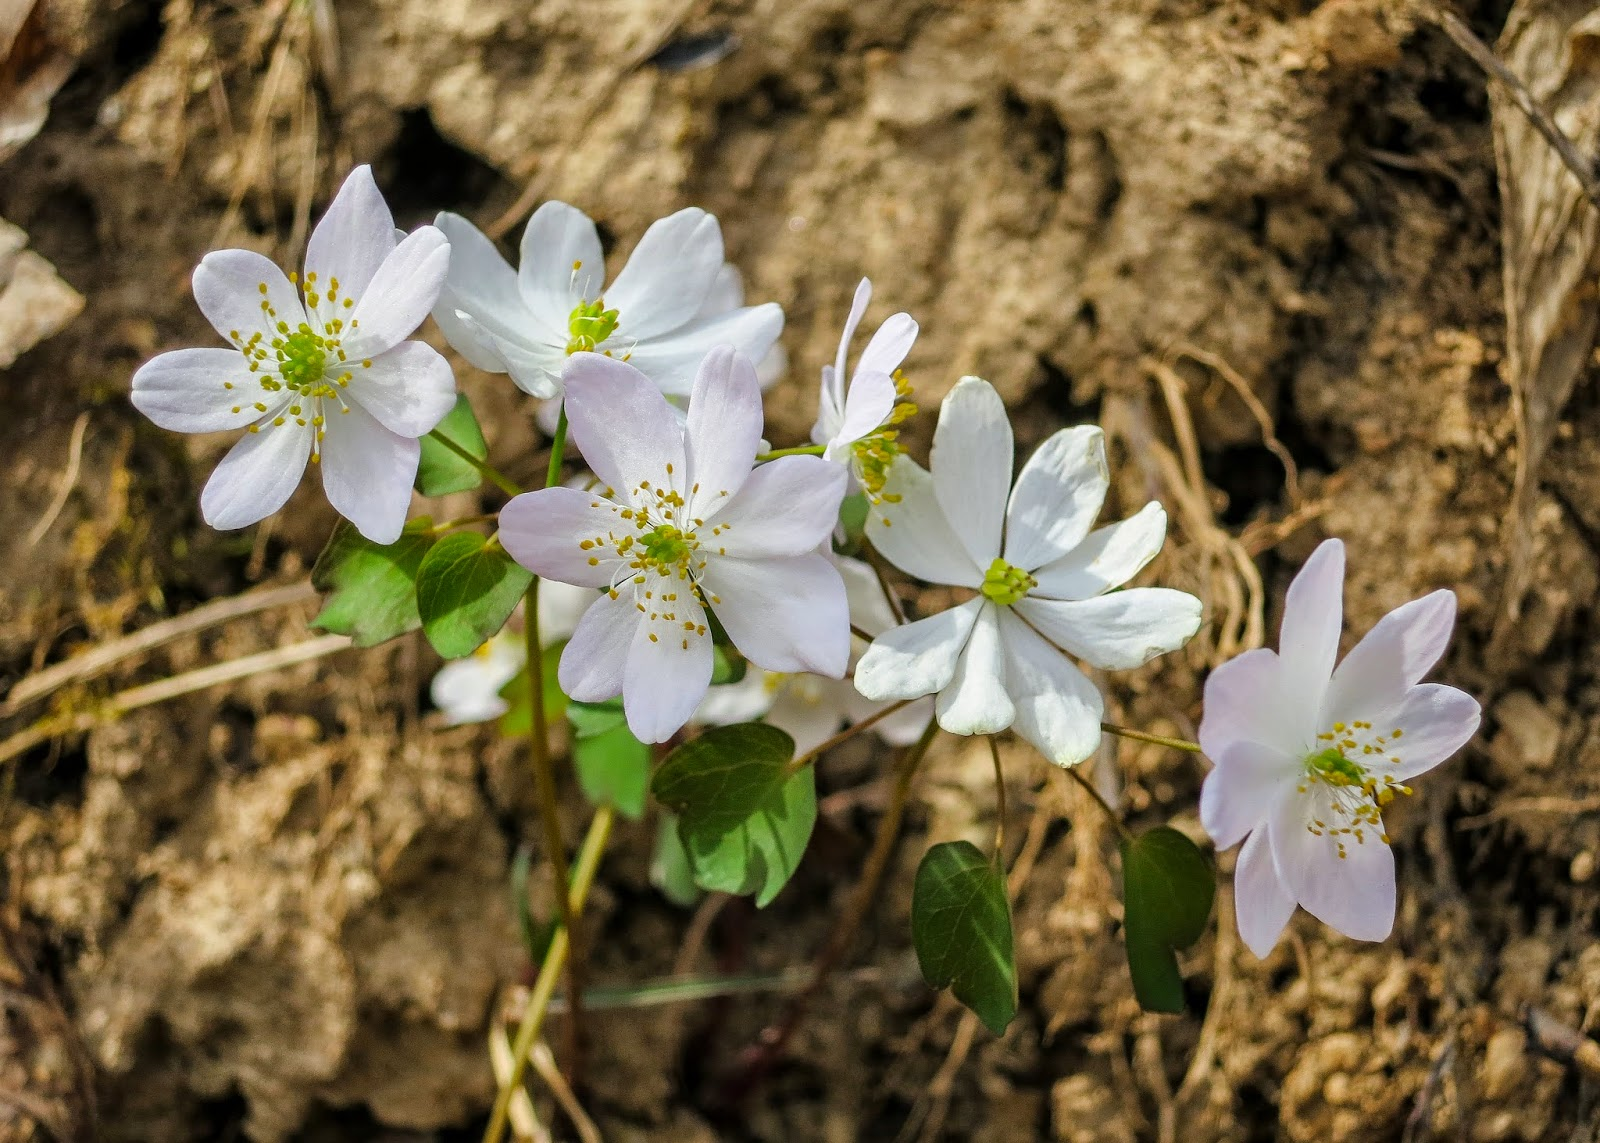 Rue Anemone, Thalictrum thalictroides